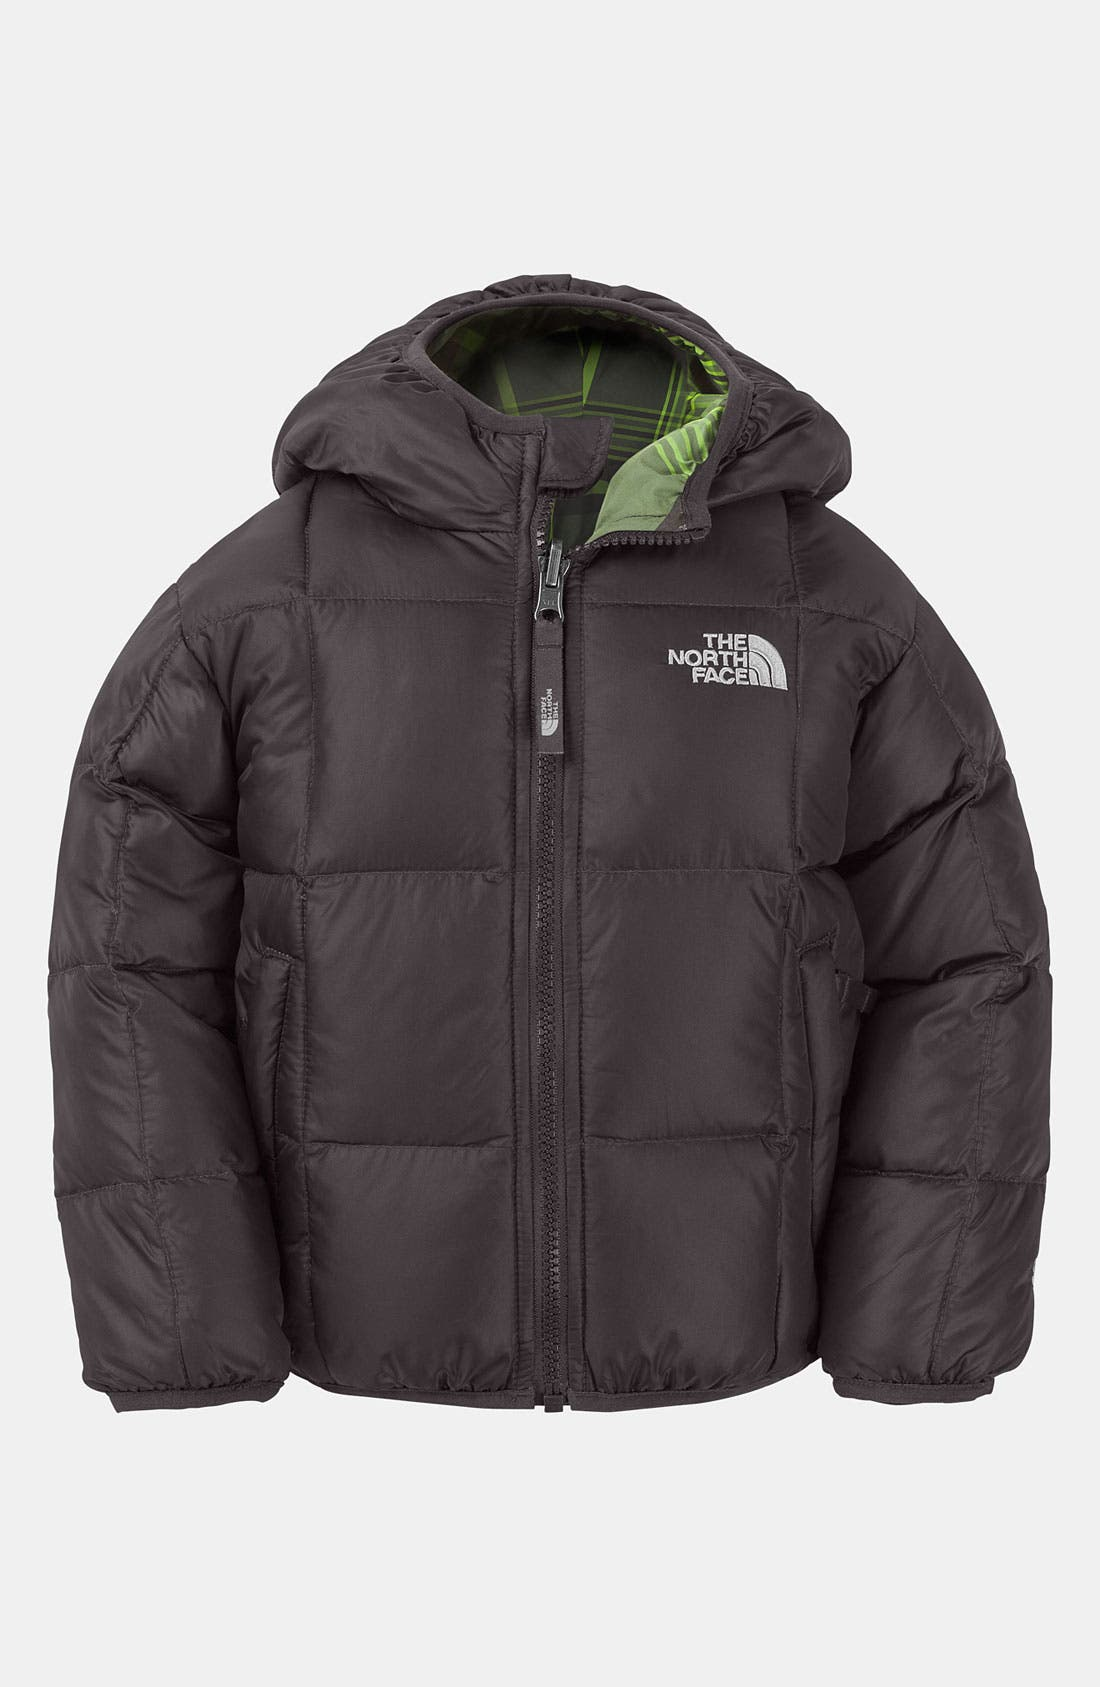 Alternate Image 1 Selected - The North Face 'Moondoggy' Down Jacket (Toddler)